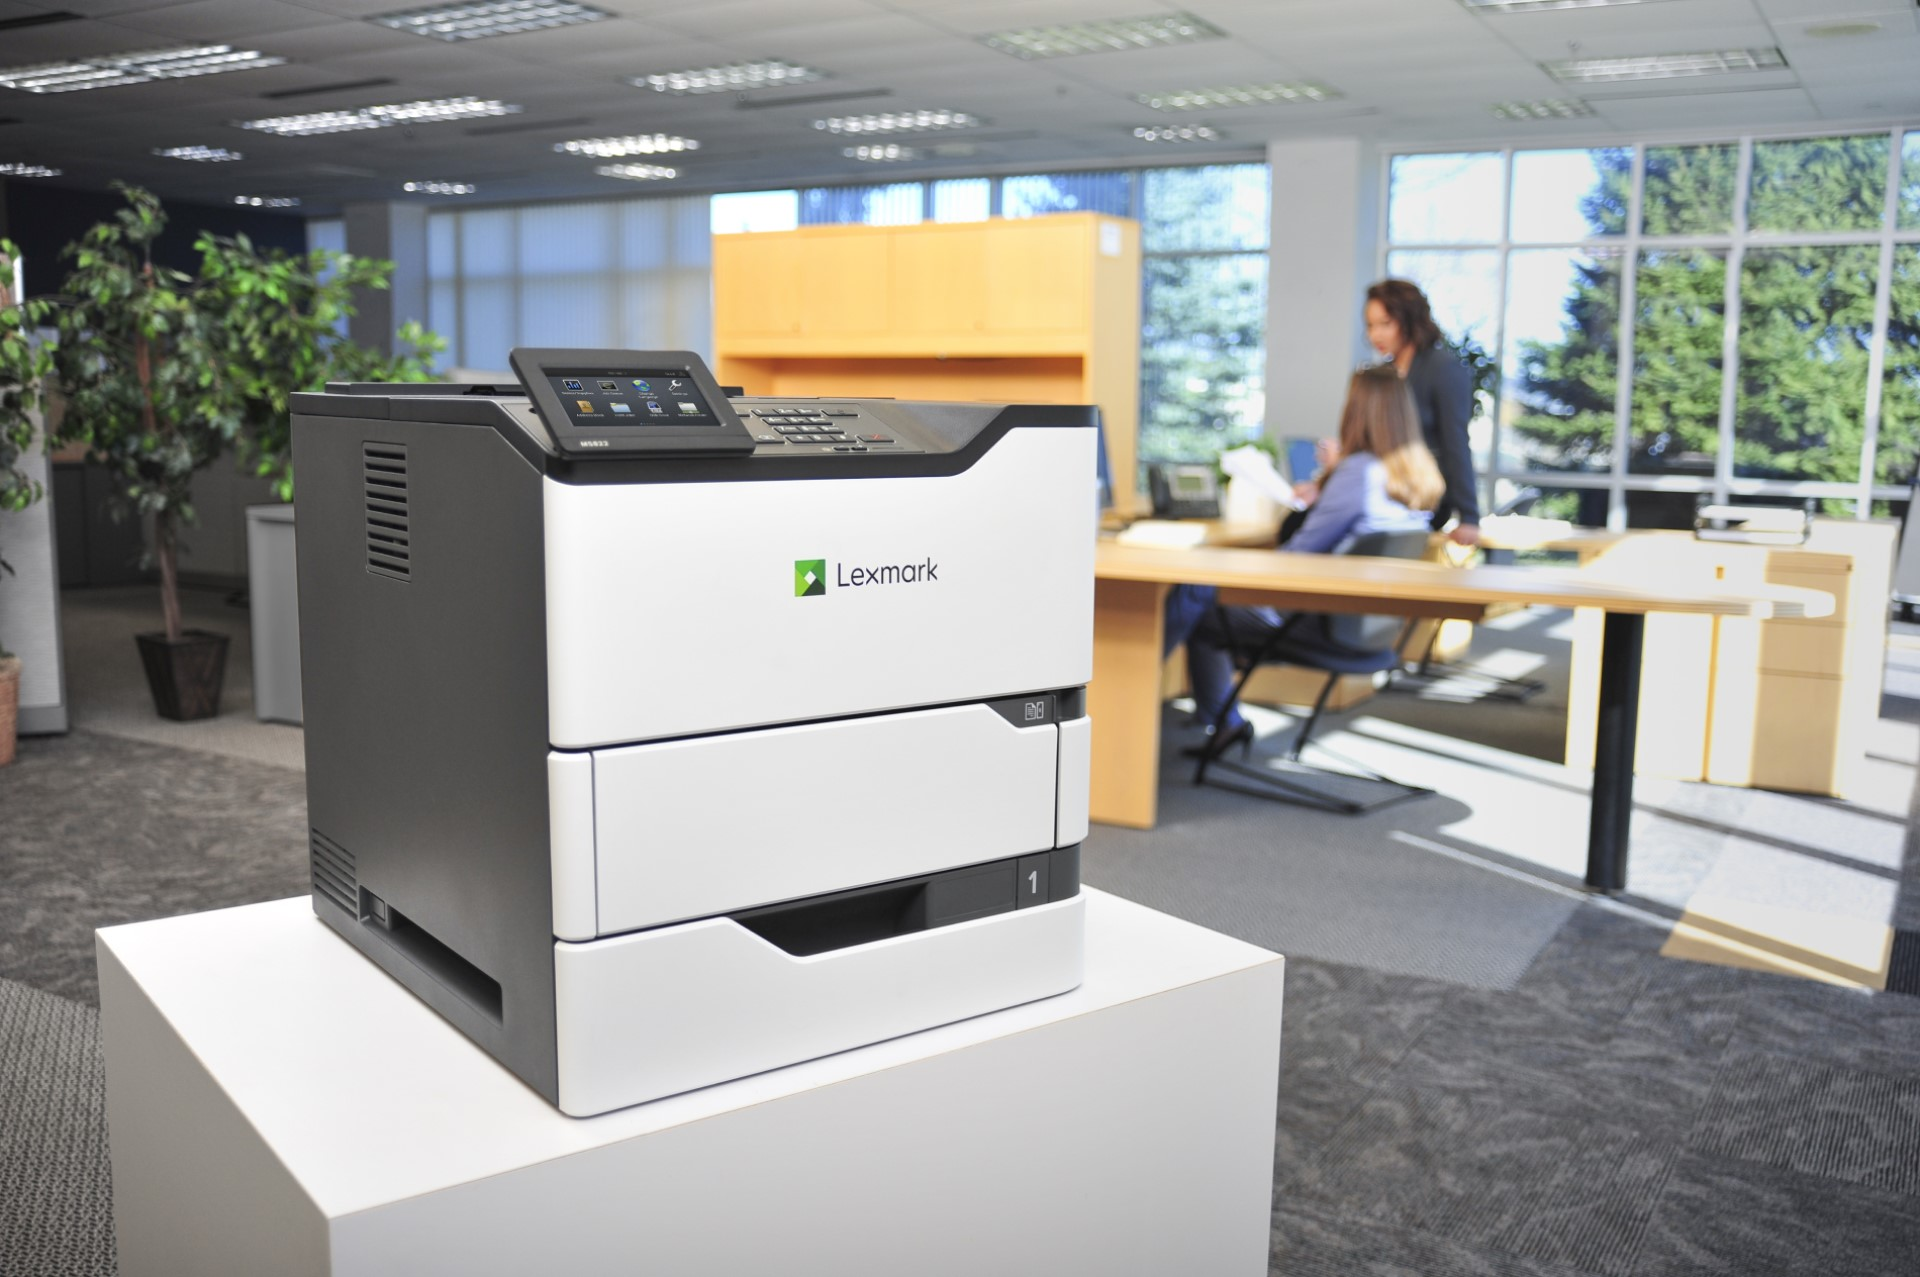 How to Get Started Lexmark Printer troubleshooting?